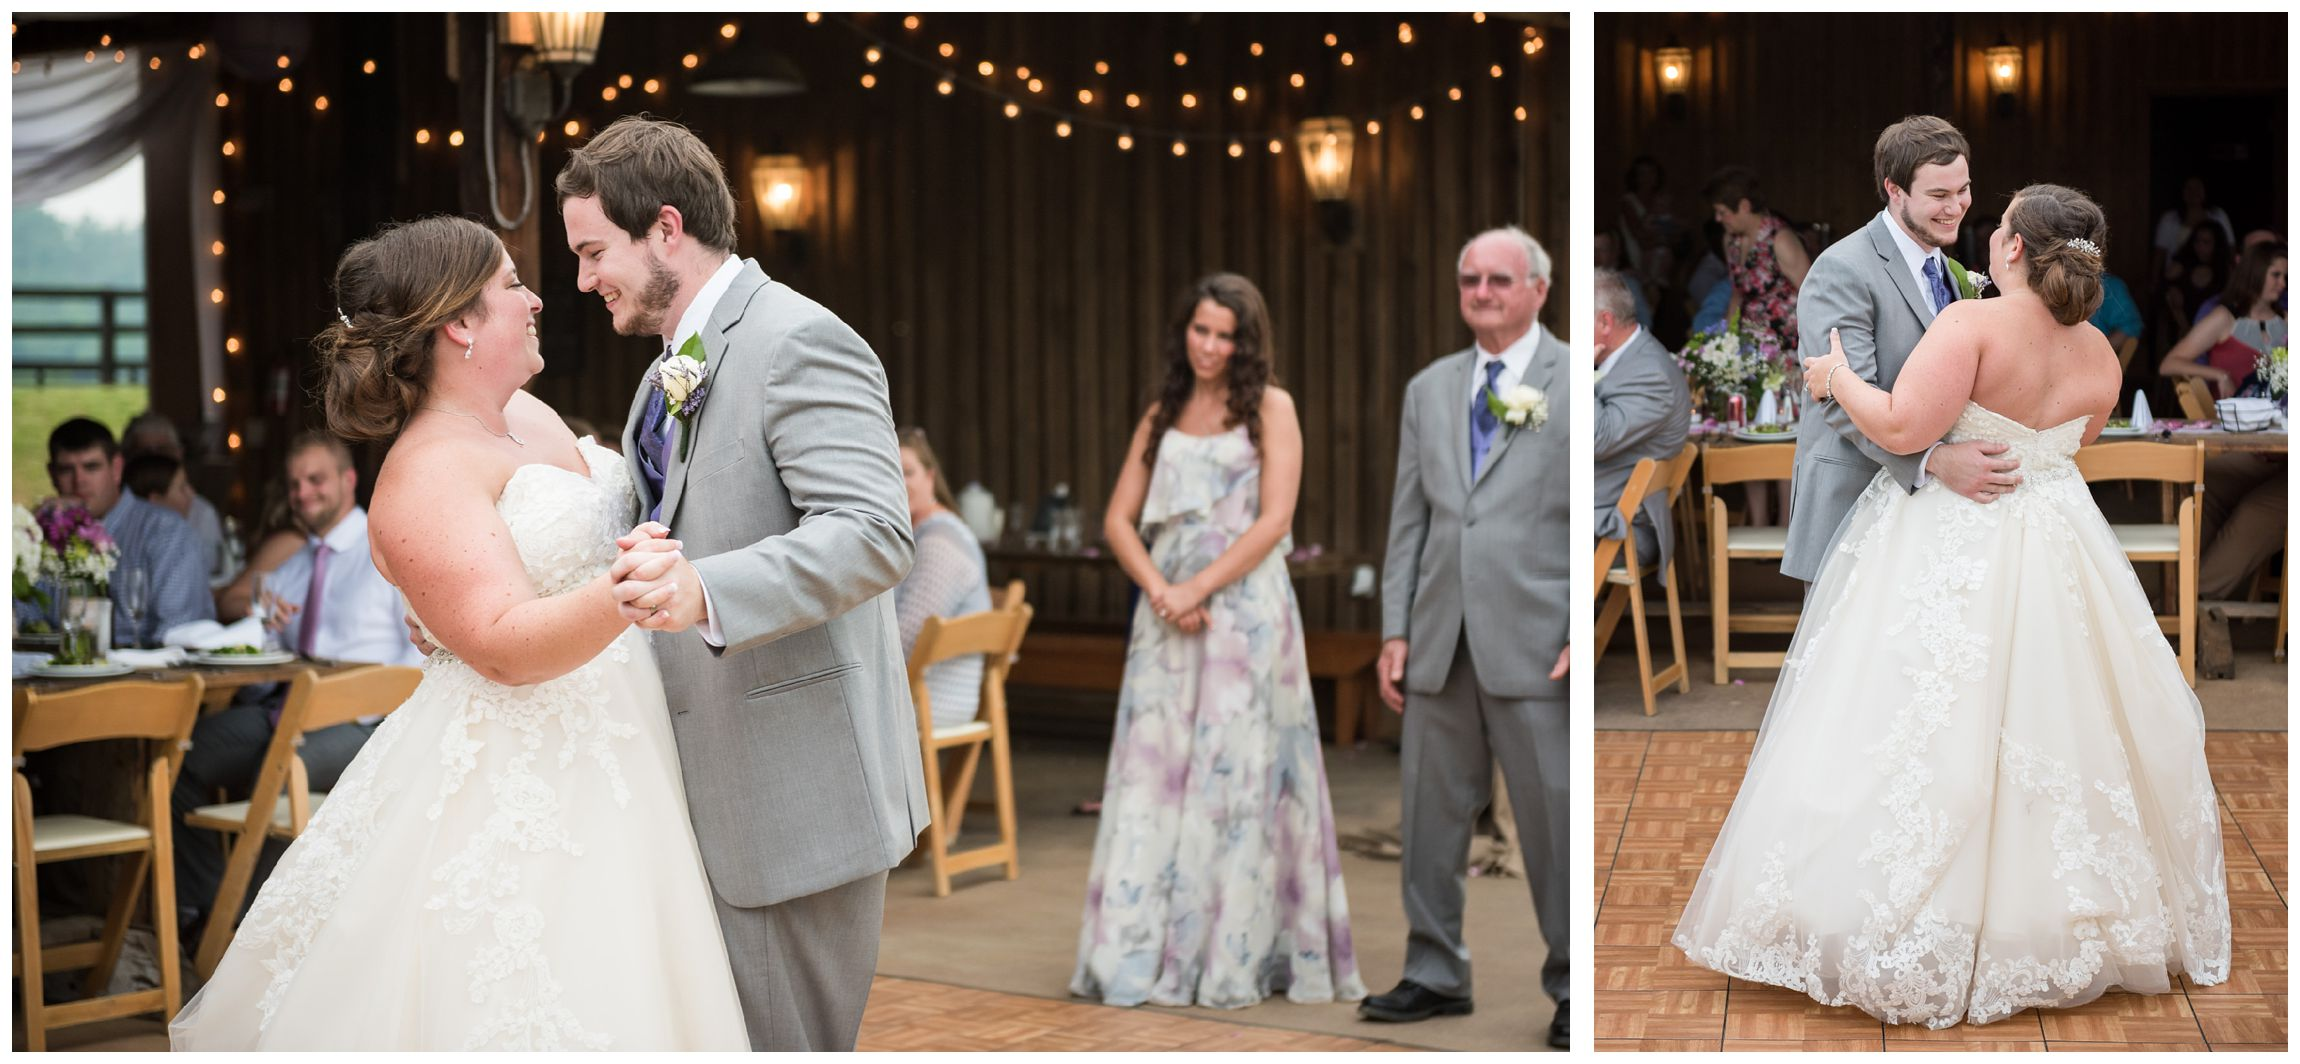 bride and groom sharing first dance at rustic barn wedding in Virginia